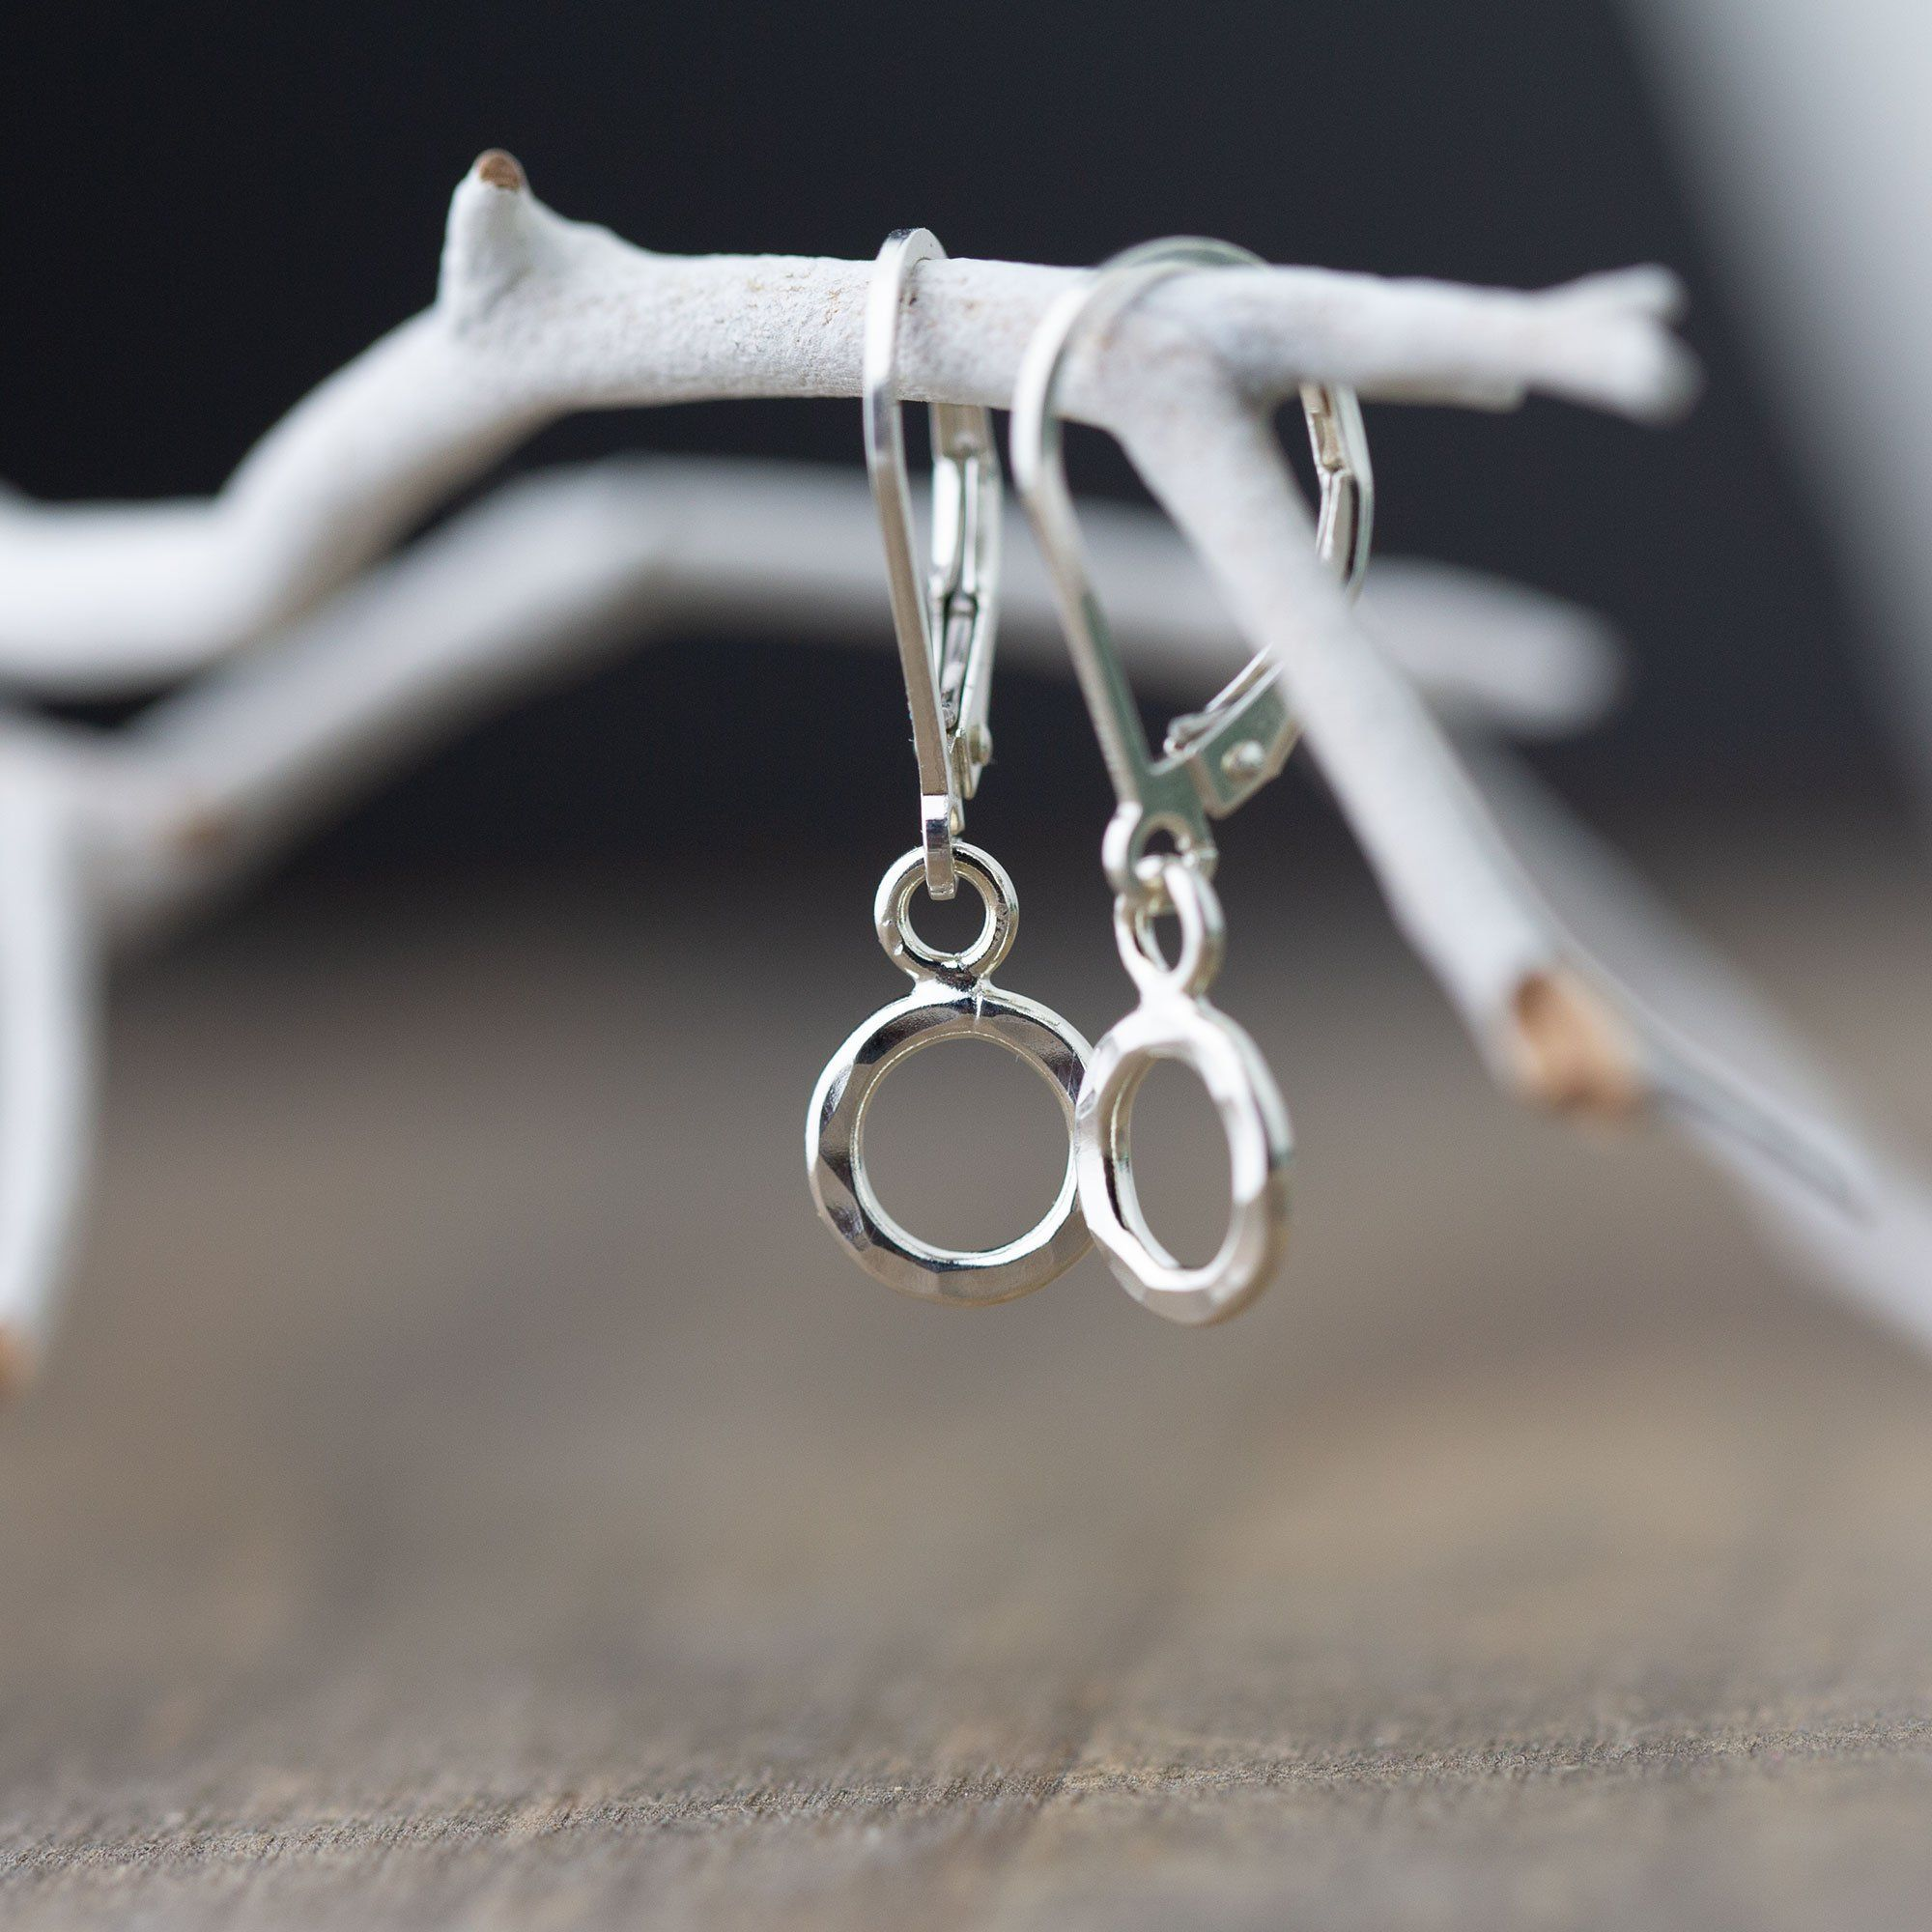 Tiny Hammered Circle Lever-back Earrings - Handmade Jewelry by Burnish